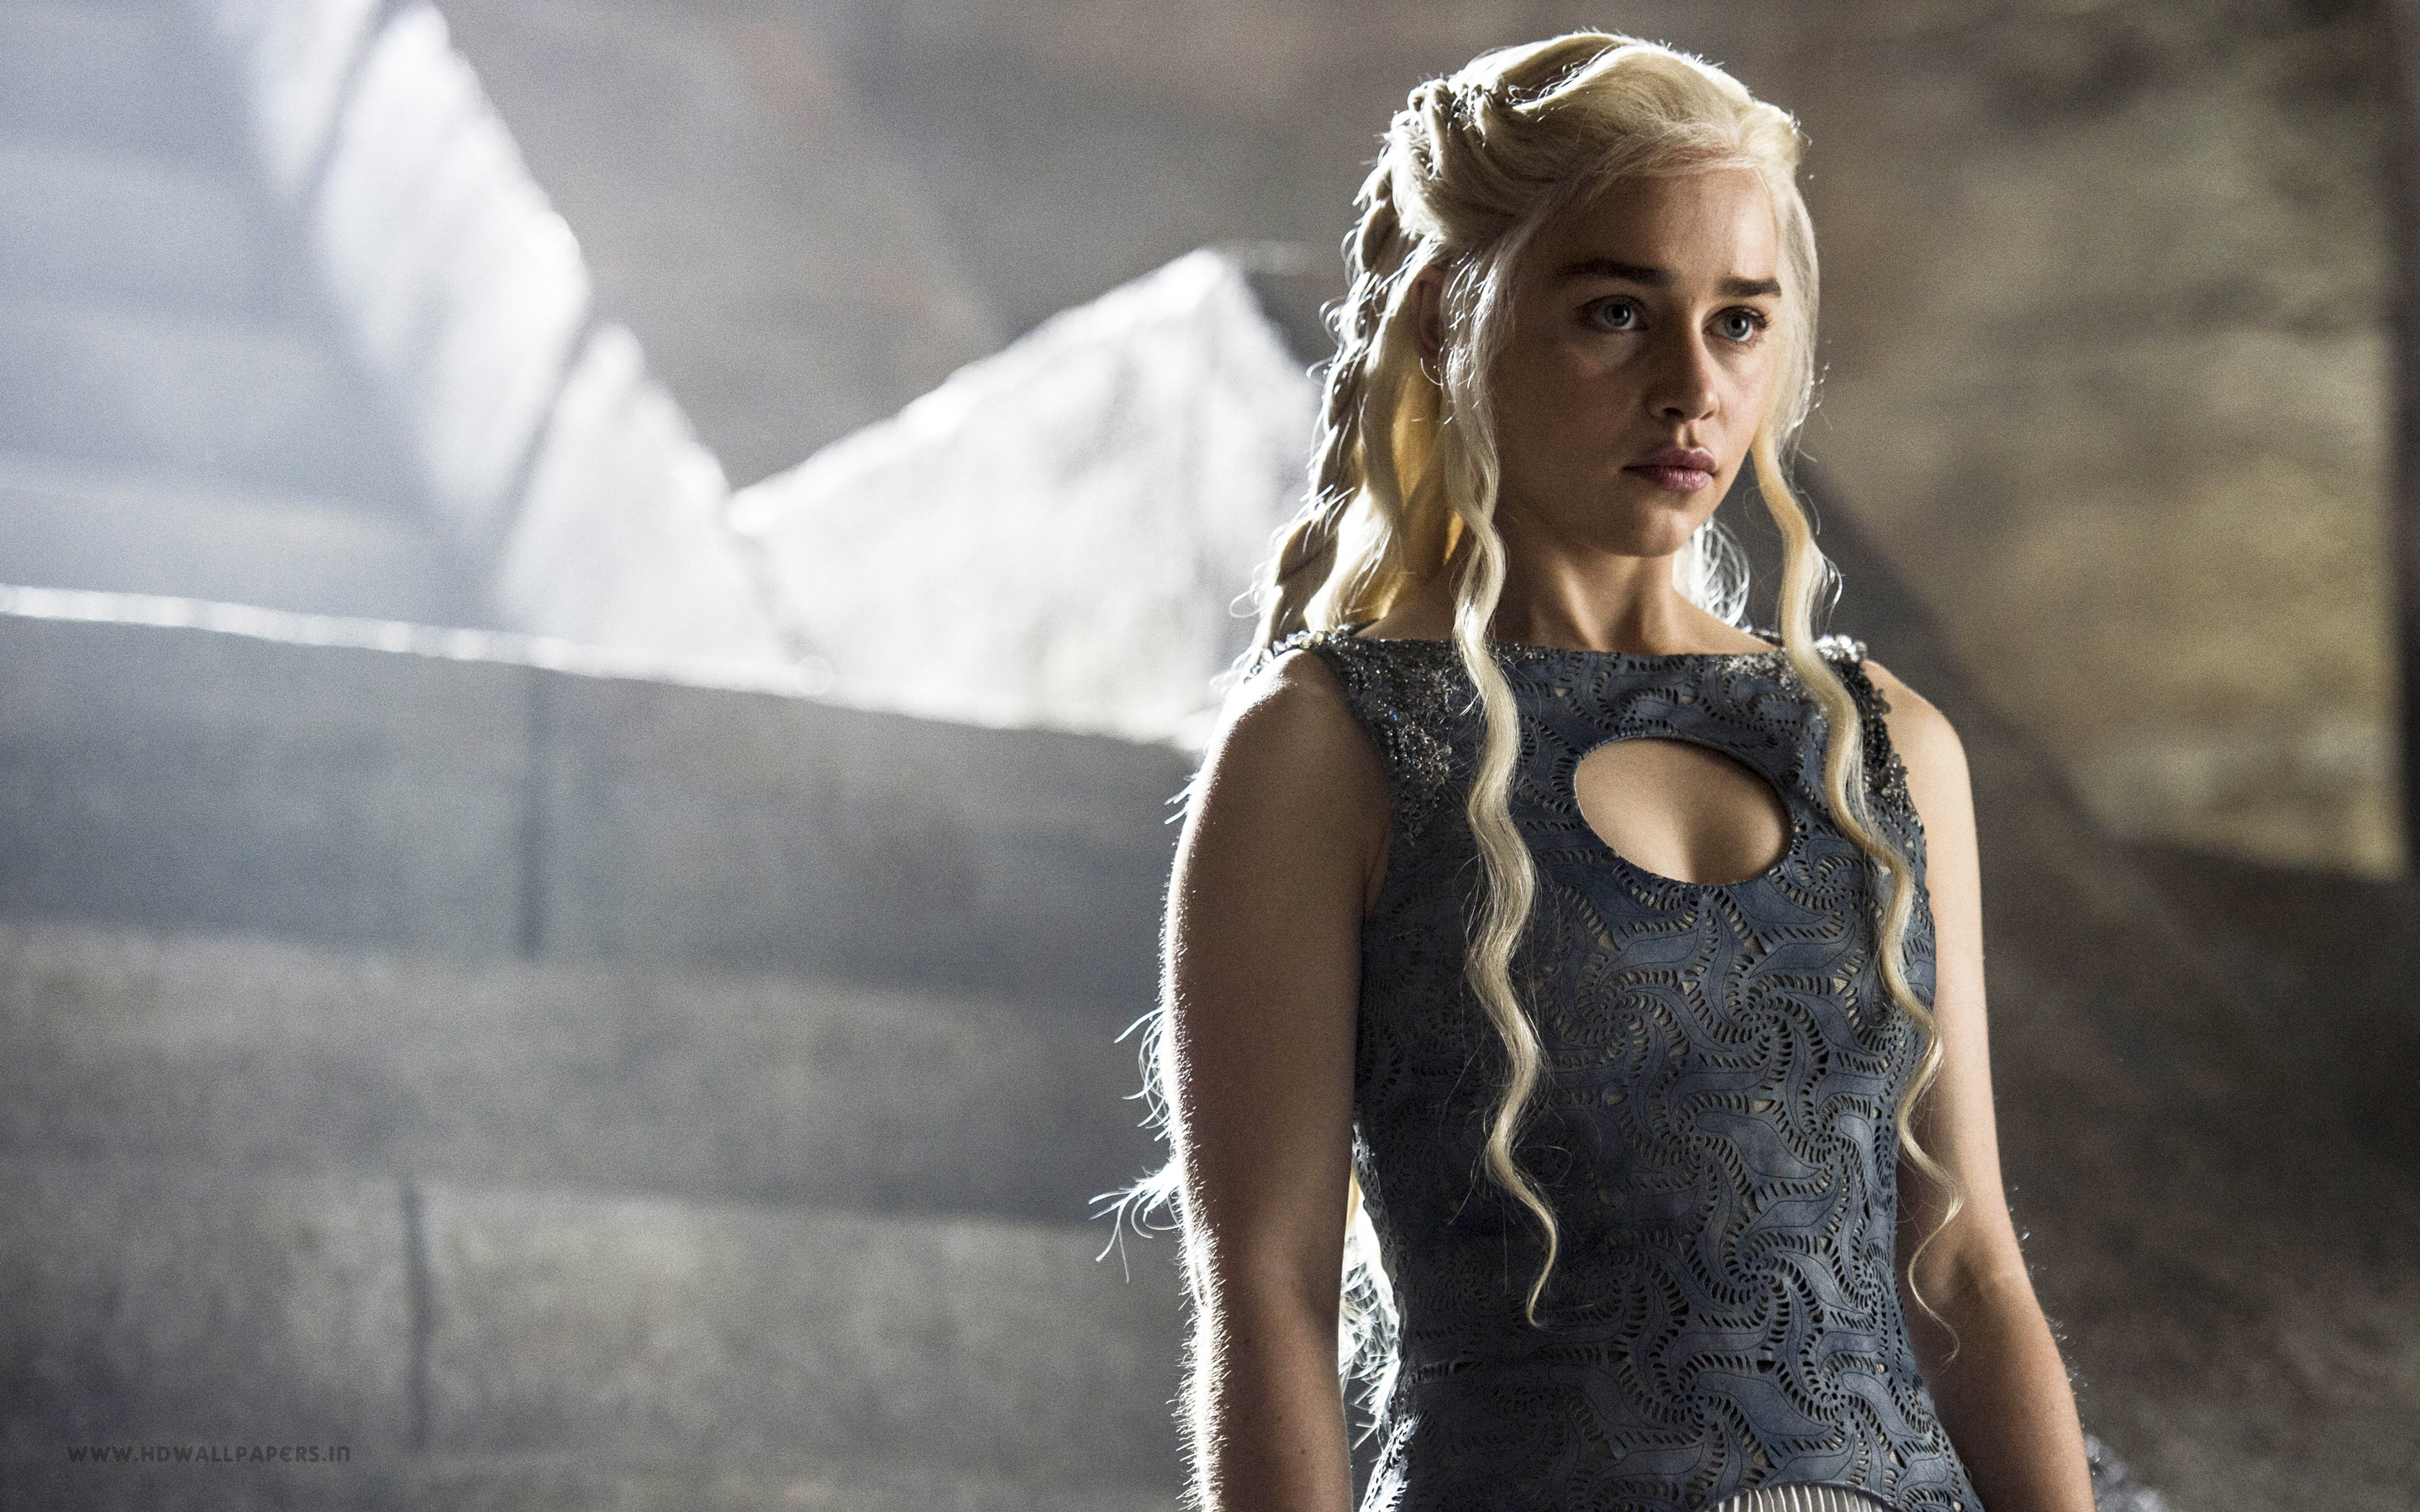 The Emmy nominations are out and here are all the shows that scored big